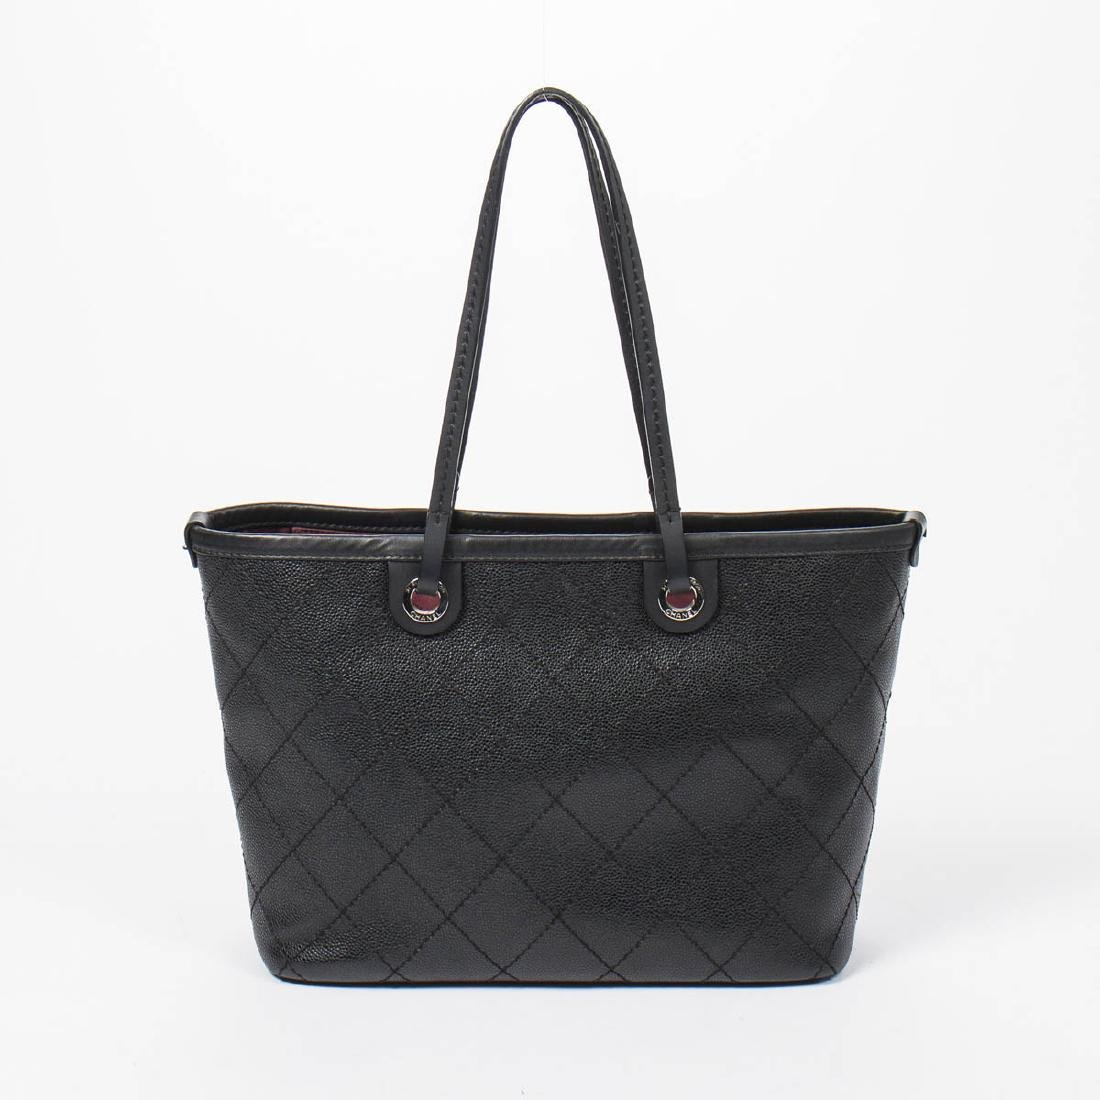 Chanel Shopping Tote MM in Black Quilted Caviar Leather - 5